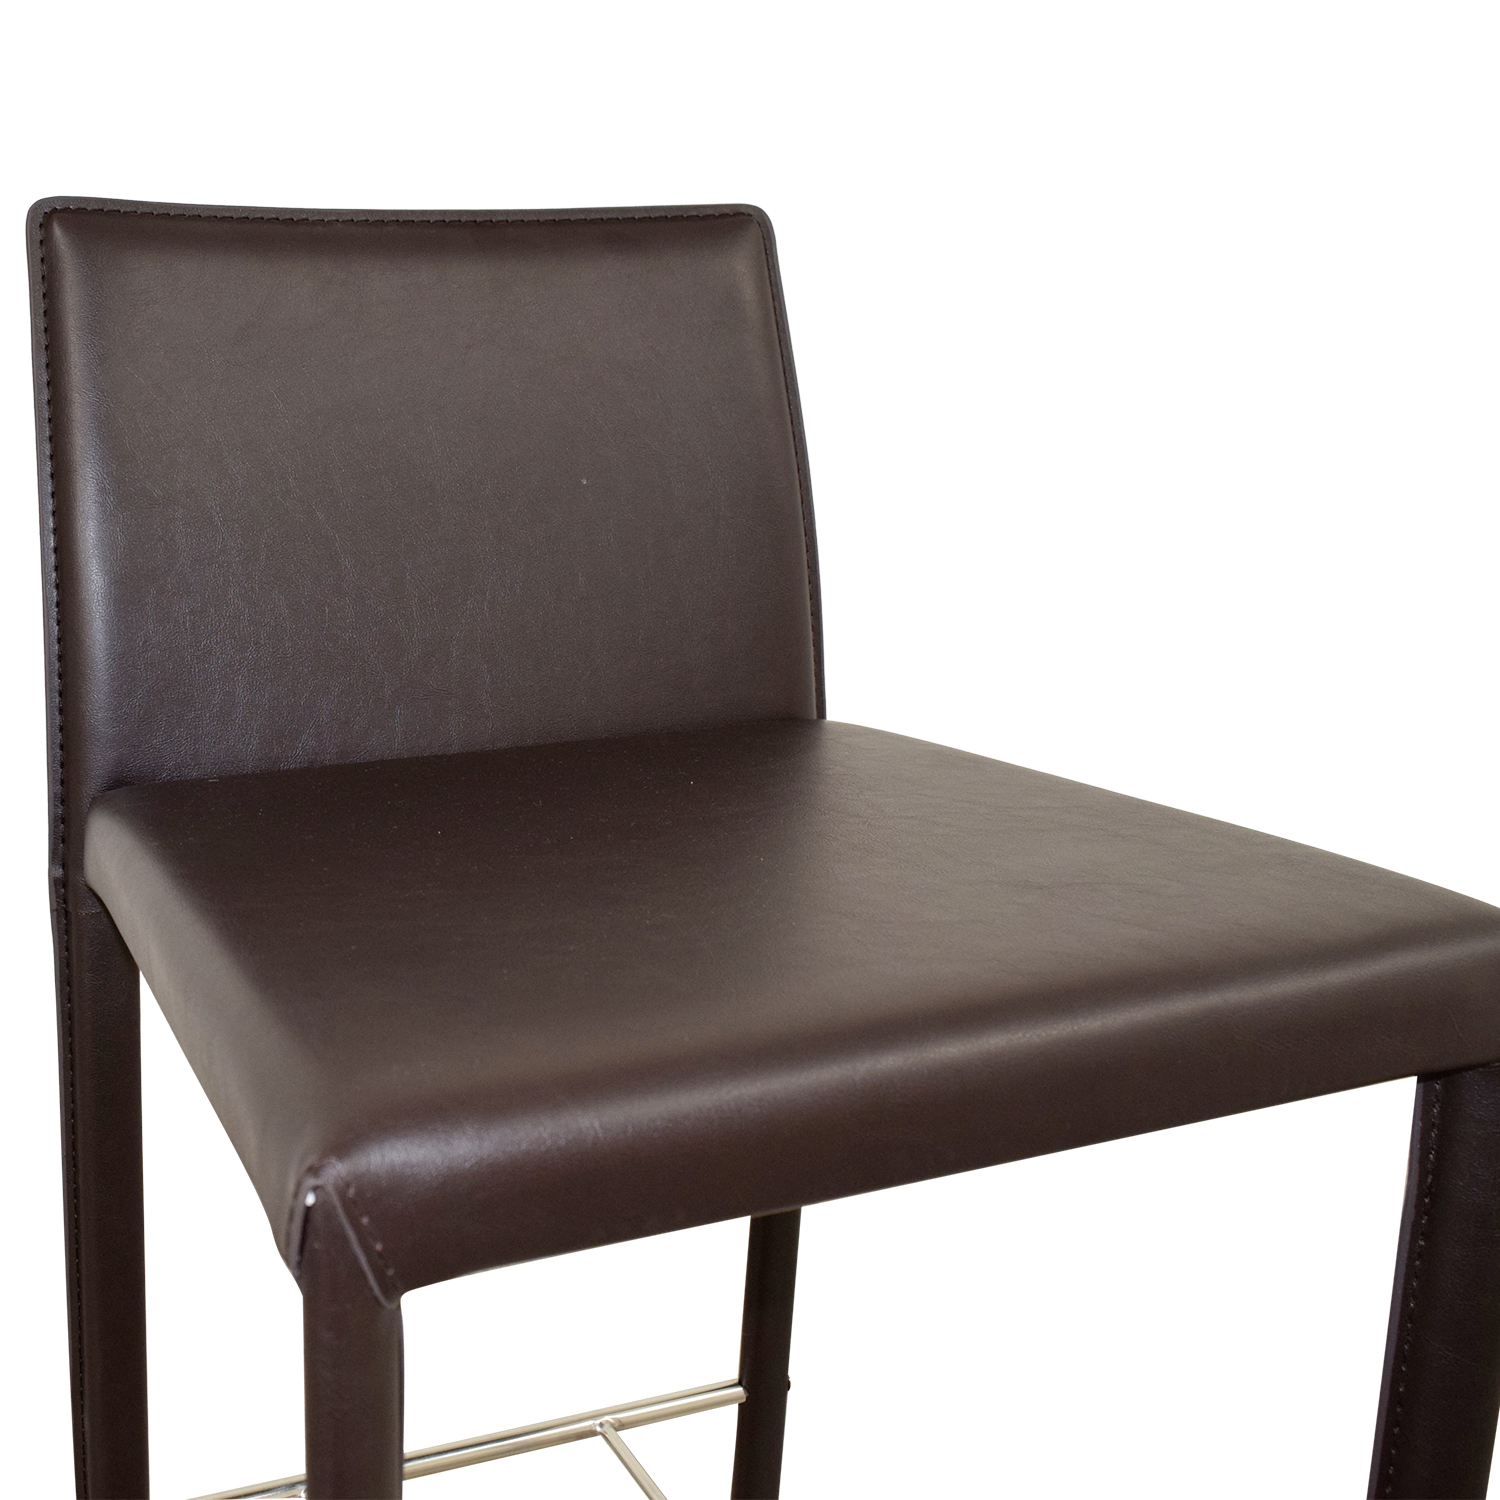 56 Off Coaster Coaster Modern Brown Leatherette Bar Chair Chairs